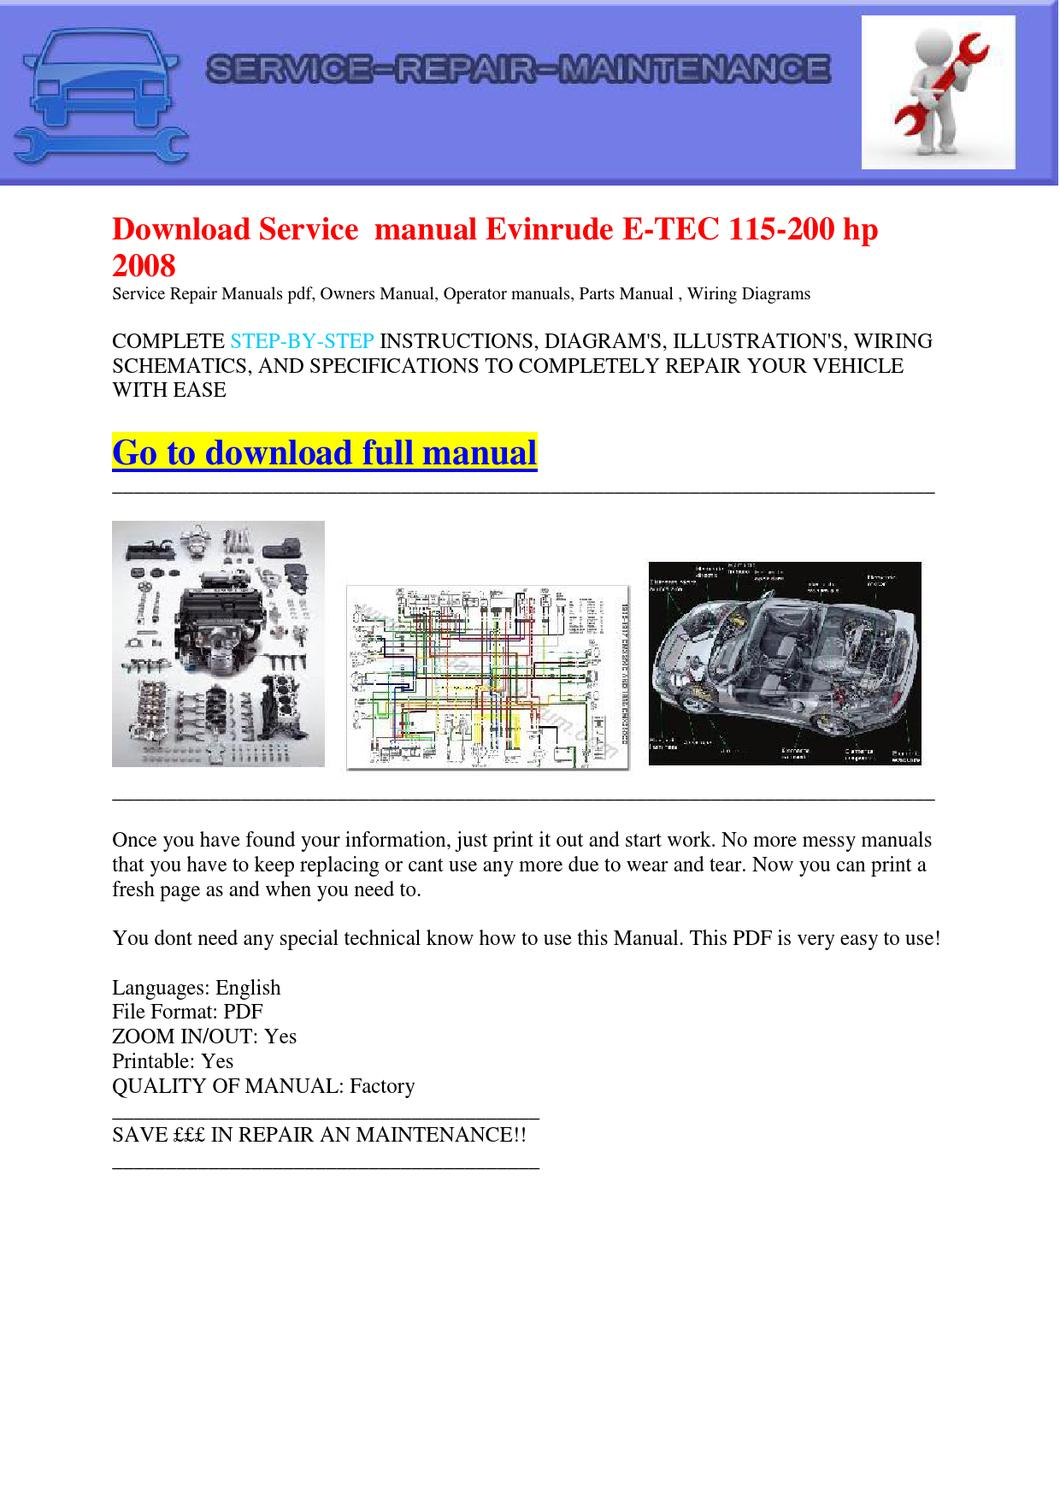 Download Service Manual Evinrude E